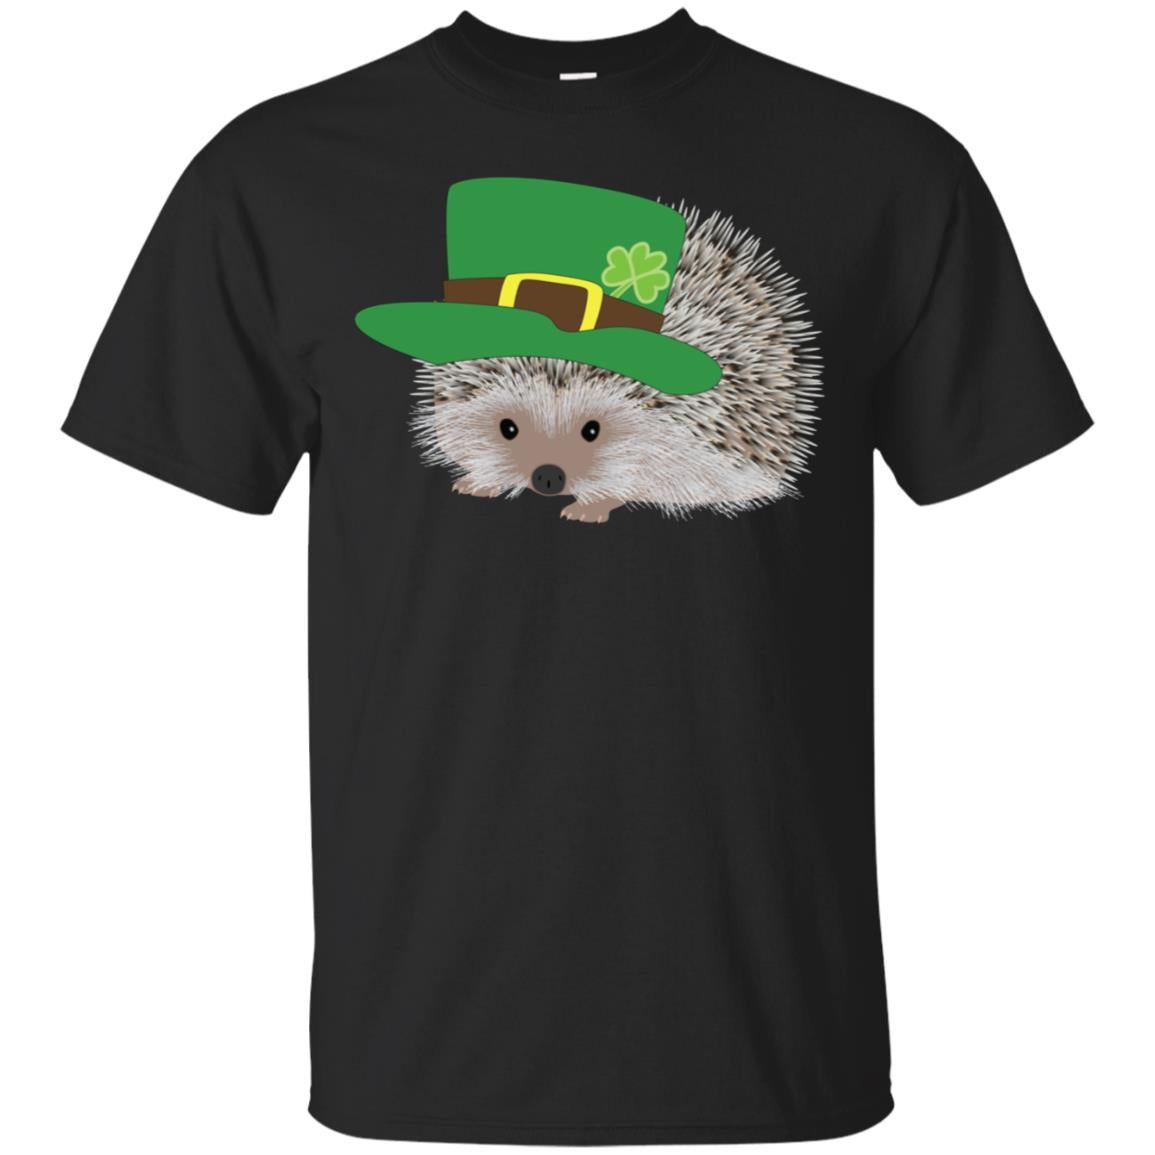 Cute and Funny Graphic Hedgehog St Patricks Day Shirt 99promocode